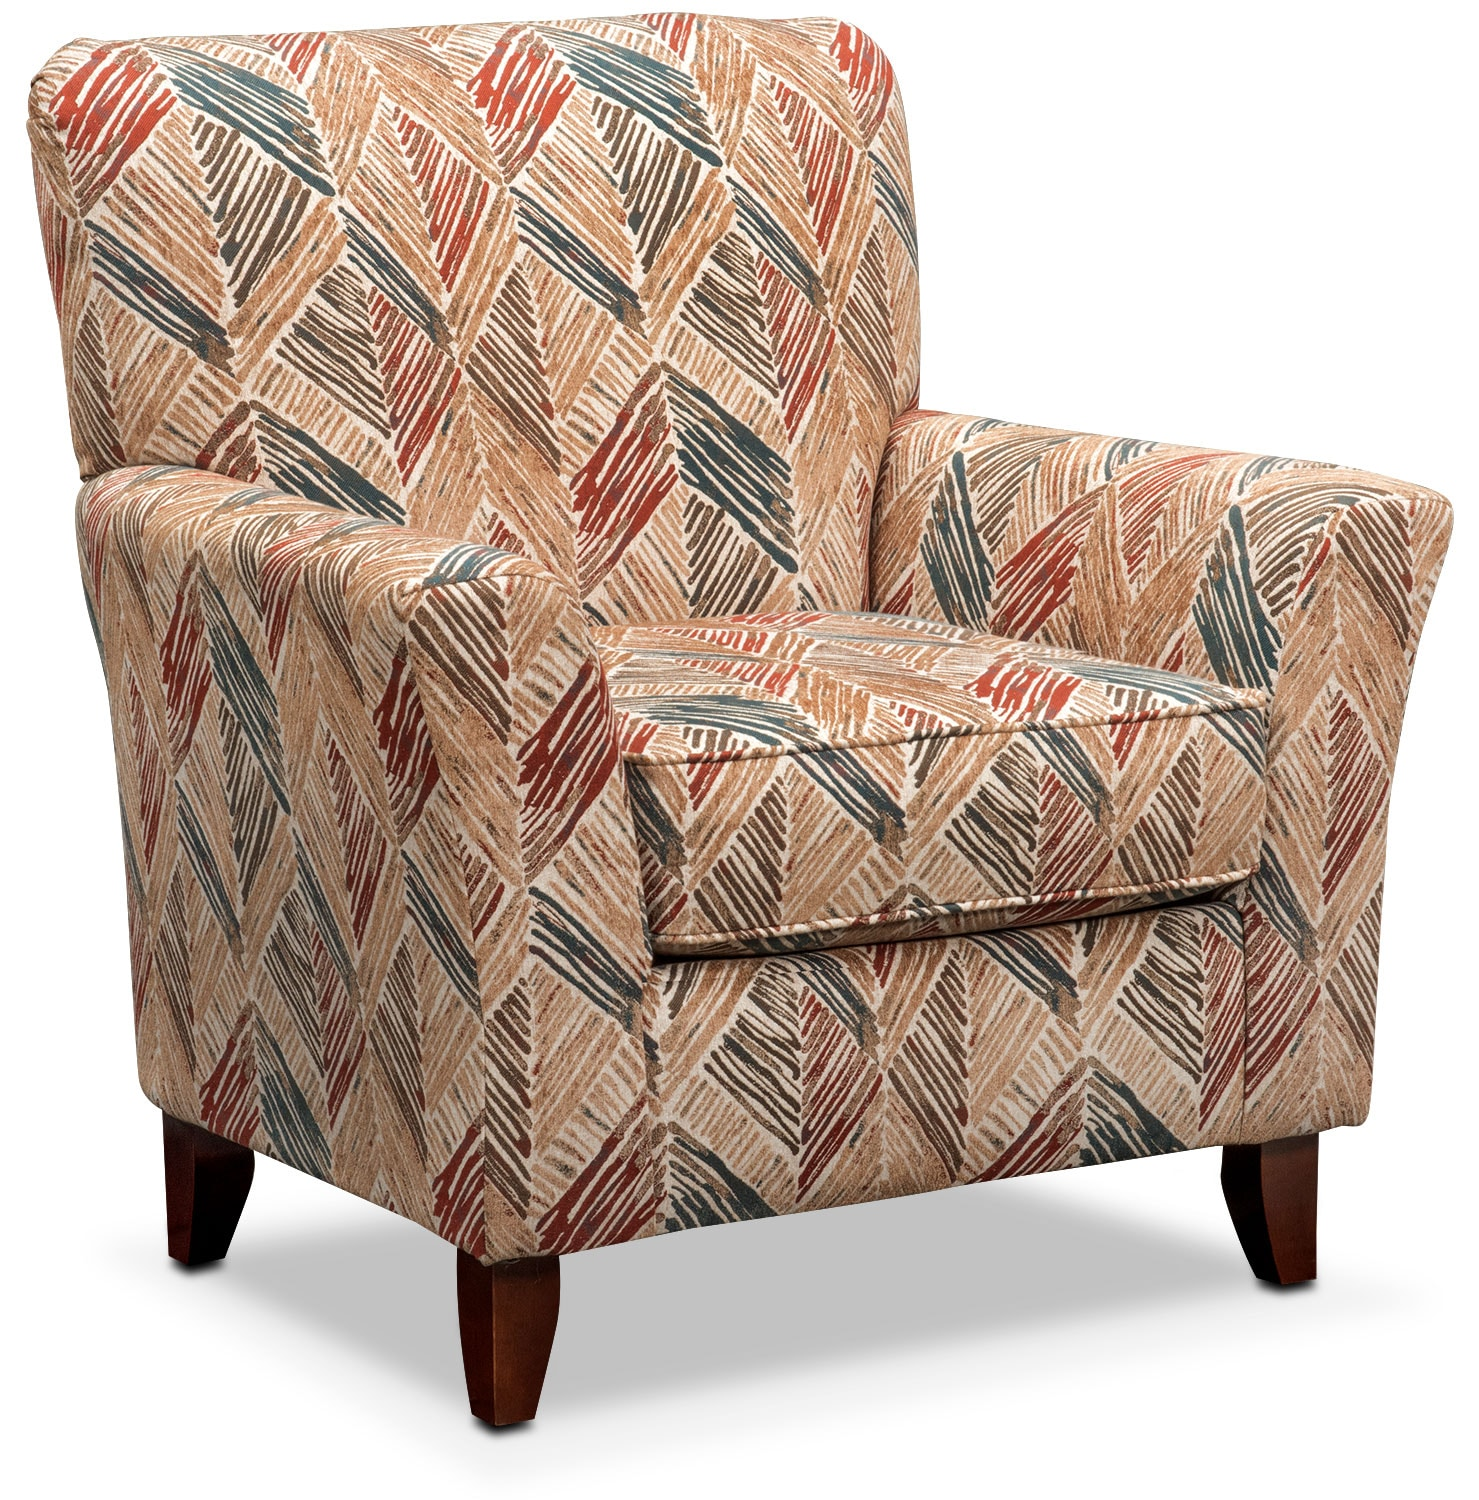 Living Room Furniture - Lakelyn Accent Chair - Cocoa Multi